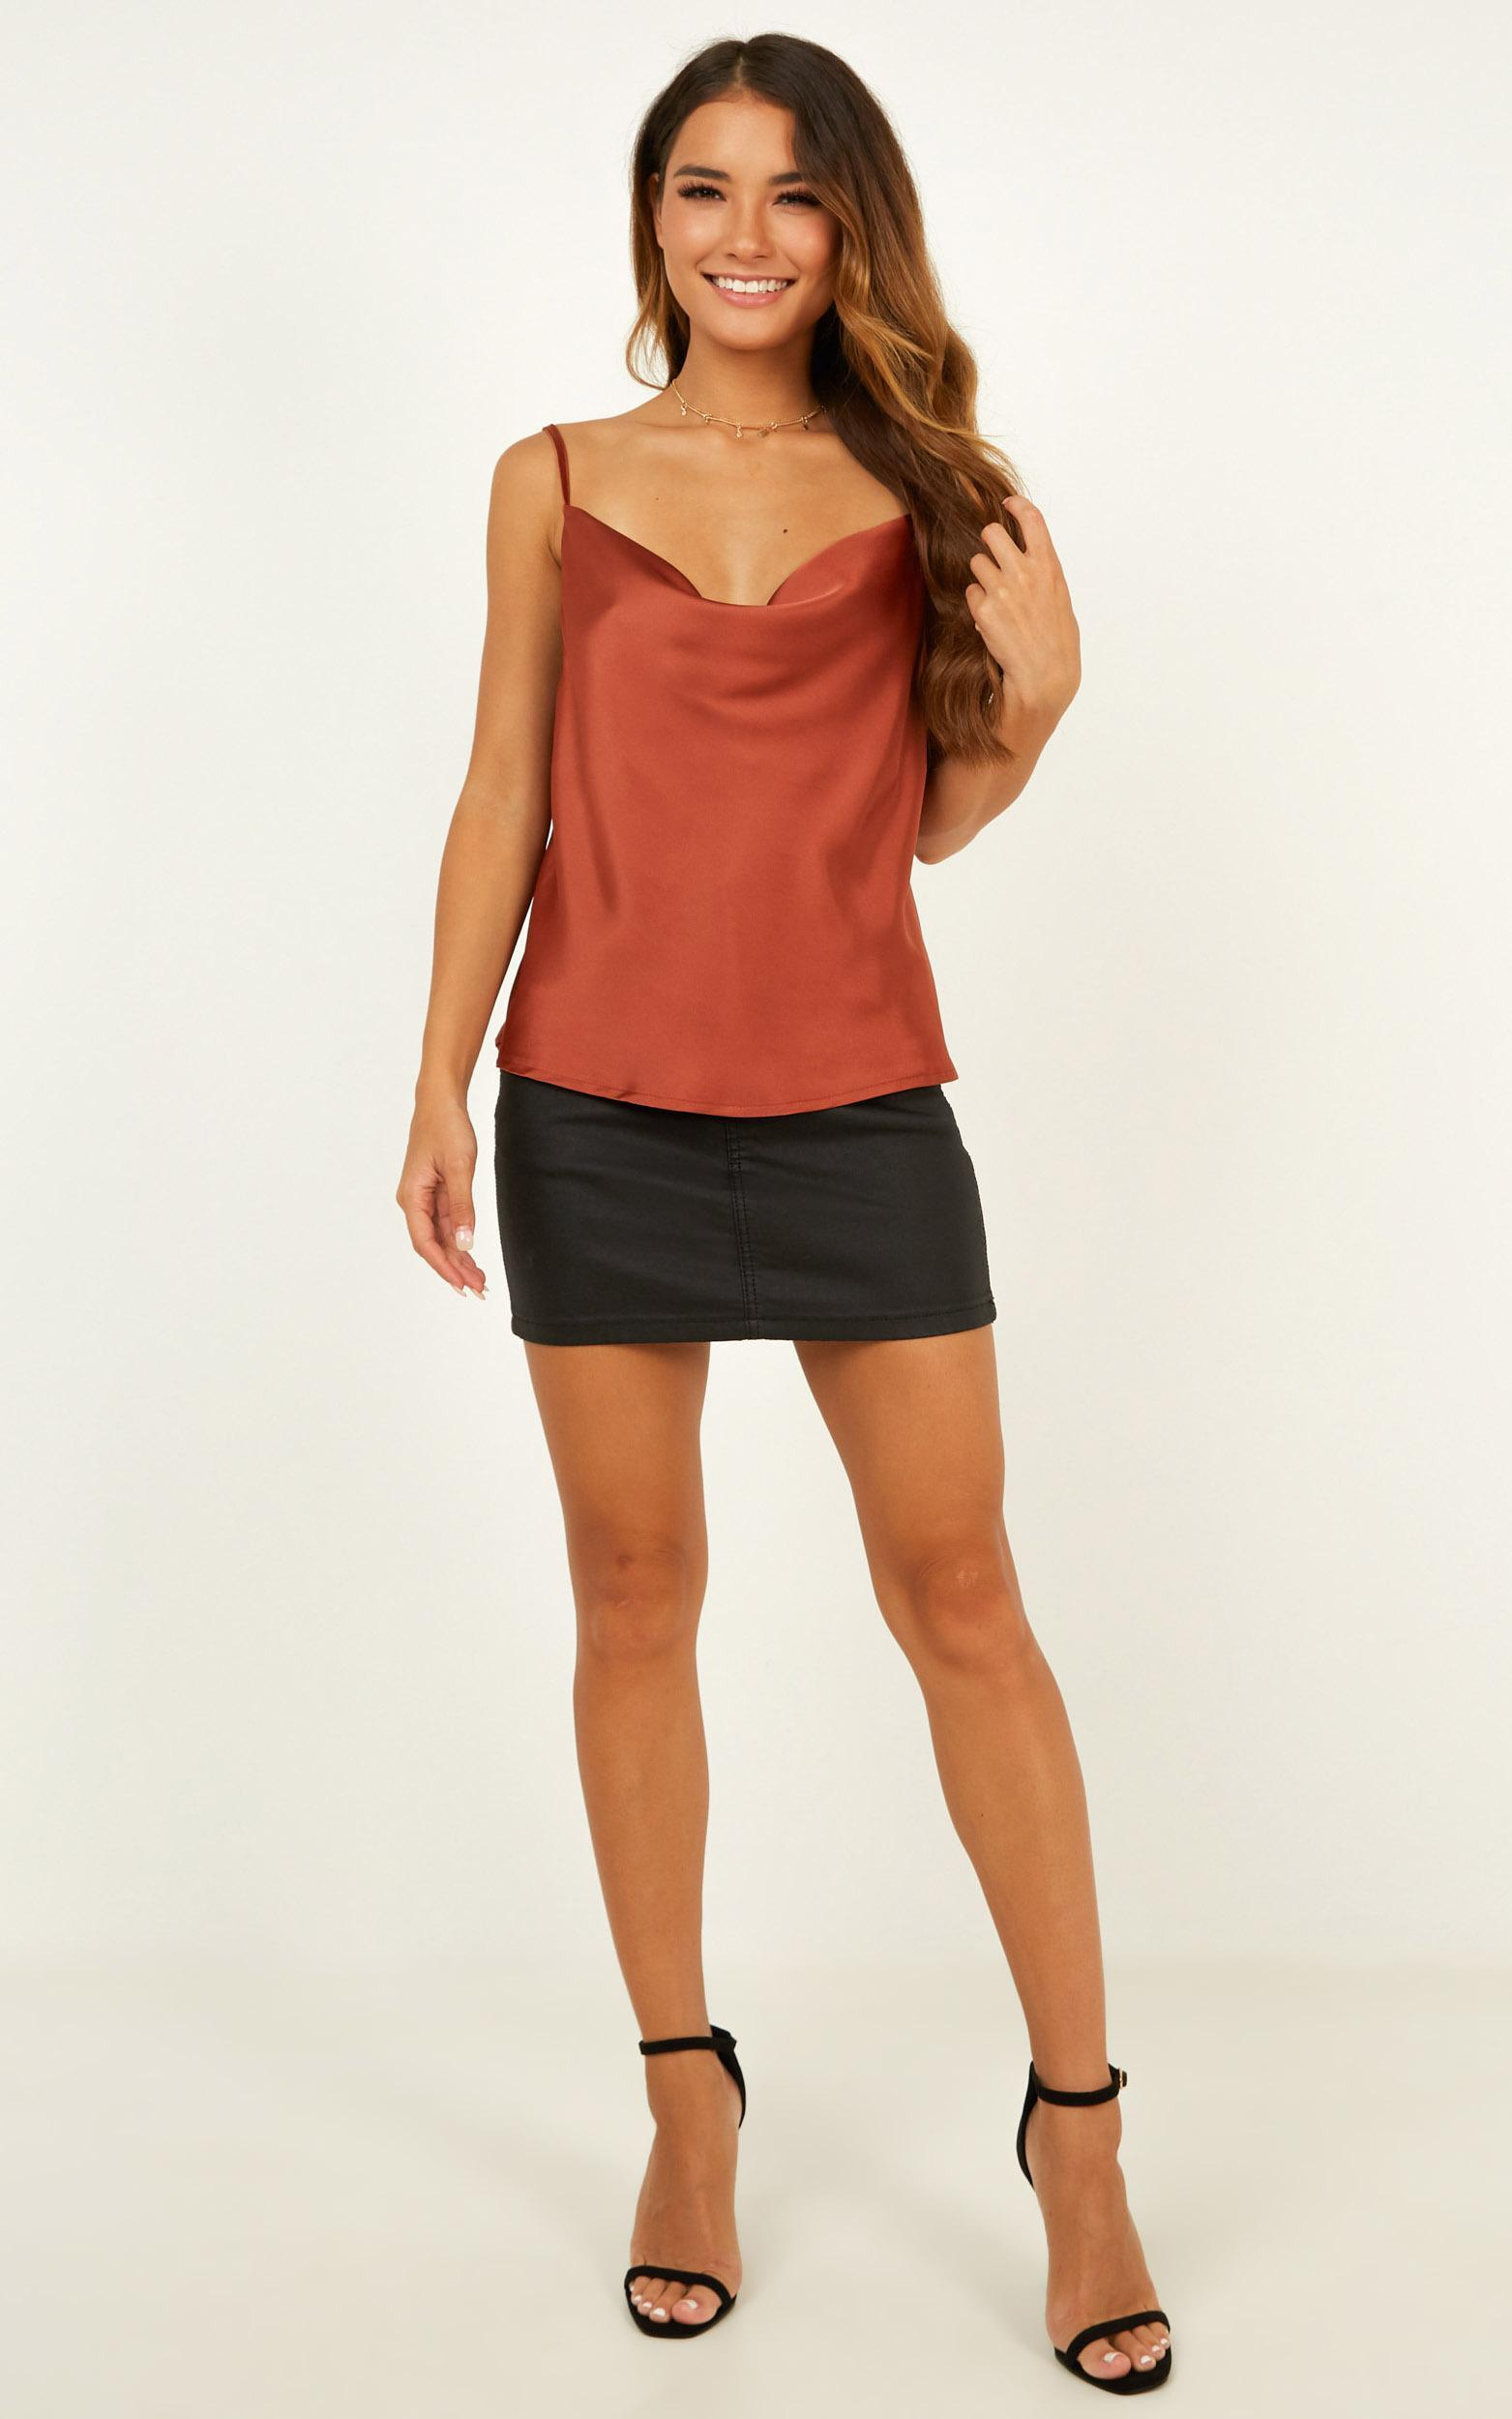 Straight Line top in rust satin - 20 (XXXXL), Rust, hi-res image number null